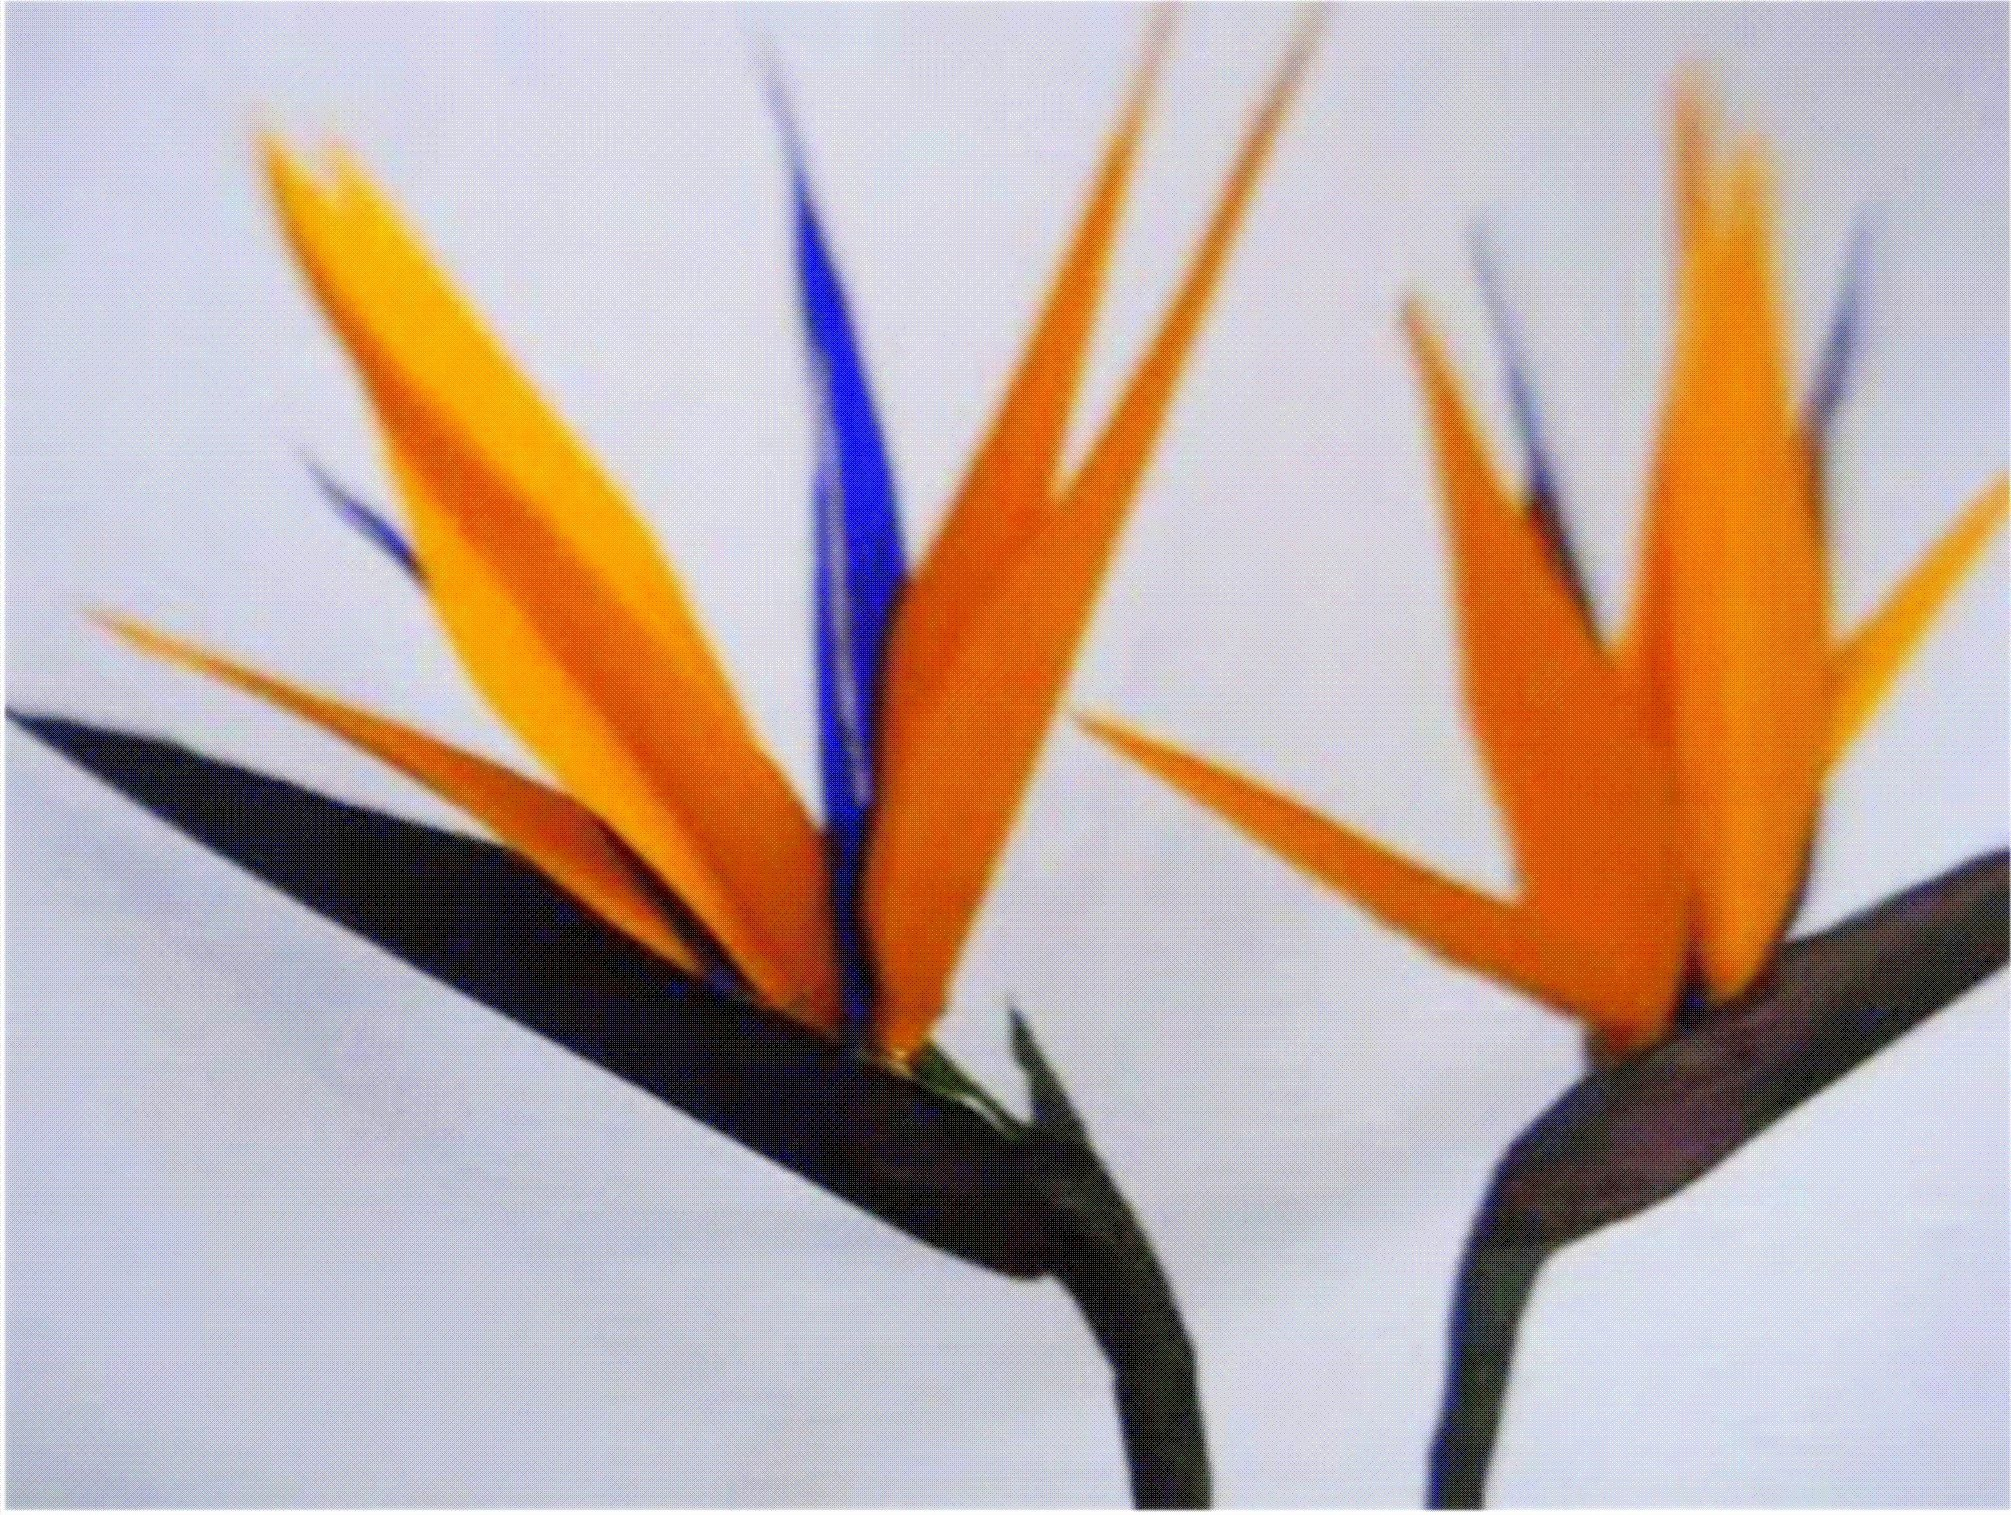 Paper Flower - Bird Of Paradise